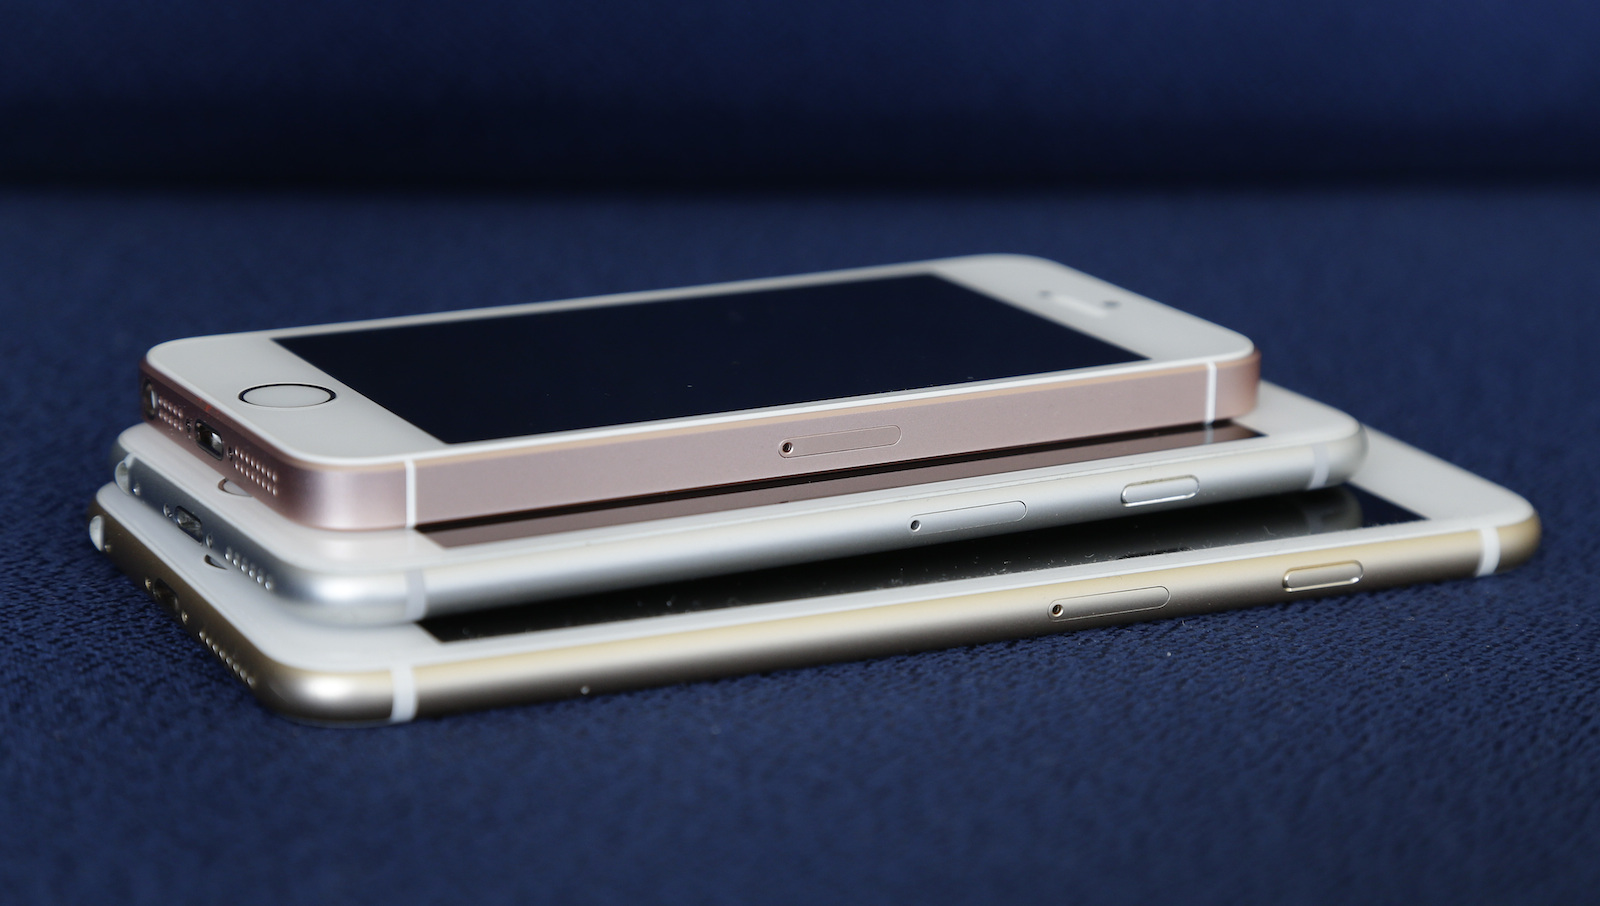 From bottom, the iPhone 6S Plus, 6S and SE lie stacked on one another in a comparison photograph, Thursday, March 24, 2016, in New York. Apple's new 4-inch iPhone SE is a good choice at a good price for many people. You get the same speeds, graphics capabilities and rear camera as the iPhone 6S, but for $250 less. (AP Photo/Julie Jacobson)